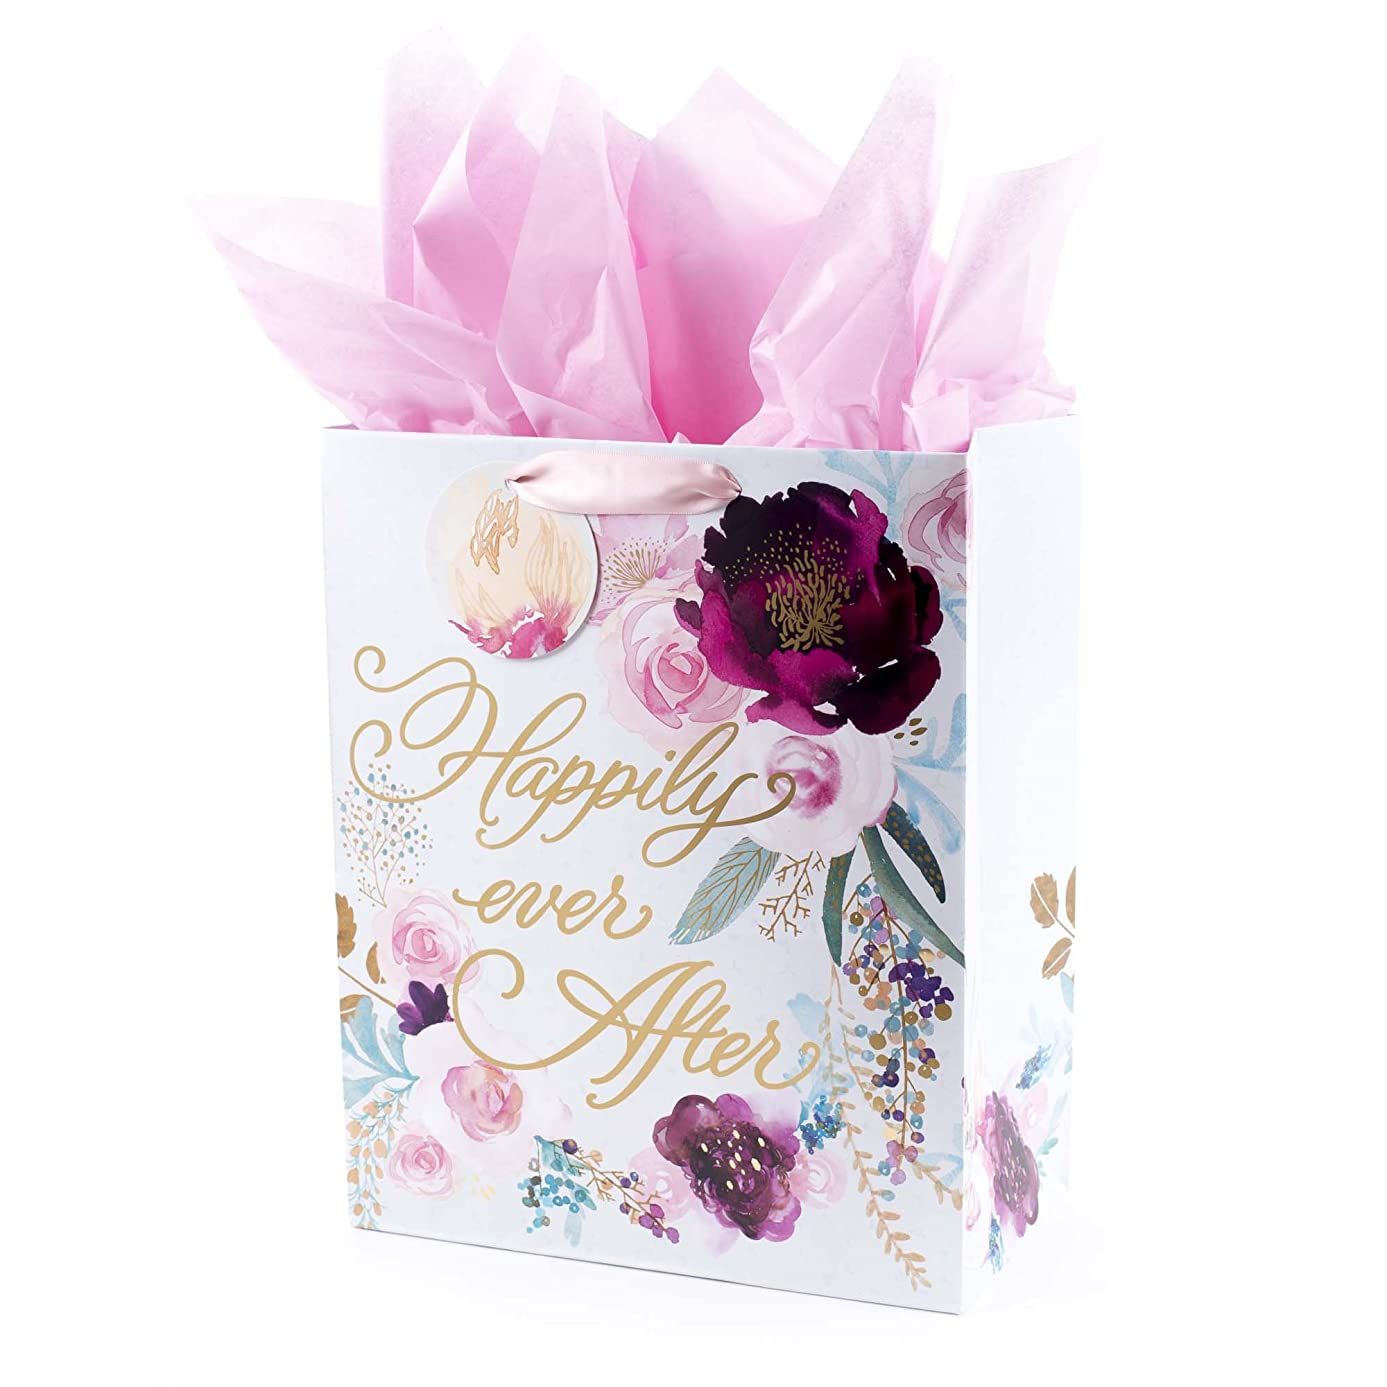 Hallmark Large Gift Bag with Tissue Paper for Weddings, Bridal Showers, Engagements and More (Floral, Happily Ever After)